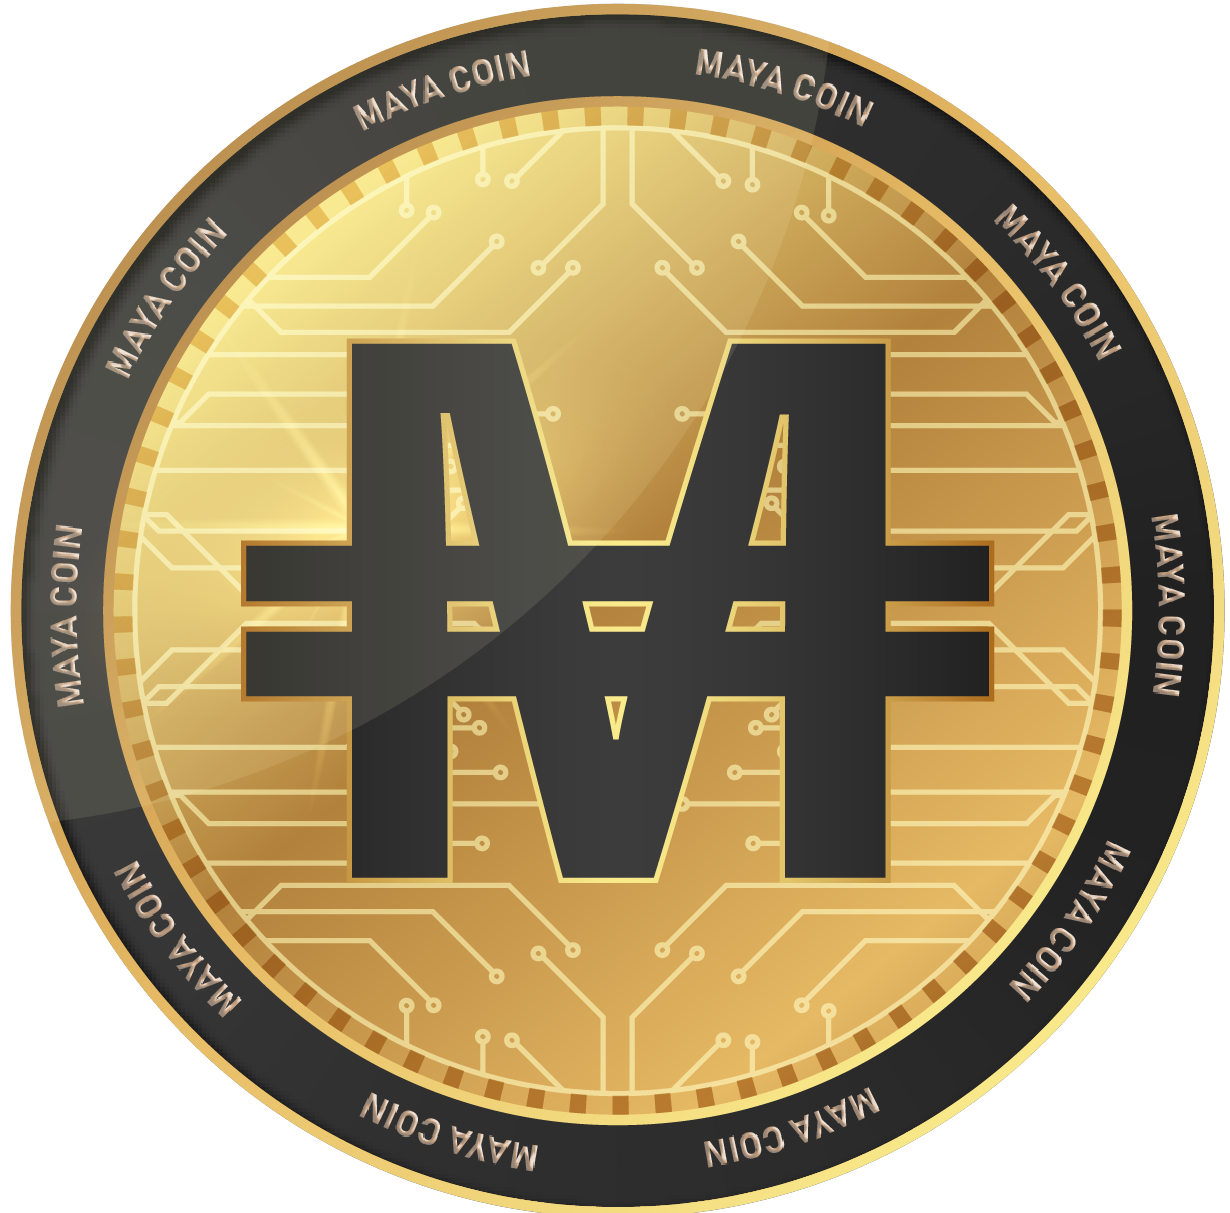 U. K. Financial Ltd.'s Maya Coin Will be Listed on Cat.ex Monday August 19, 2019